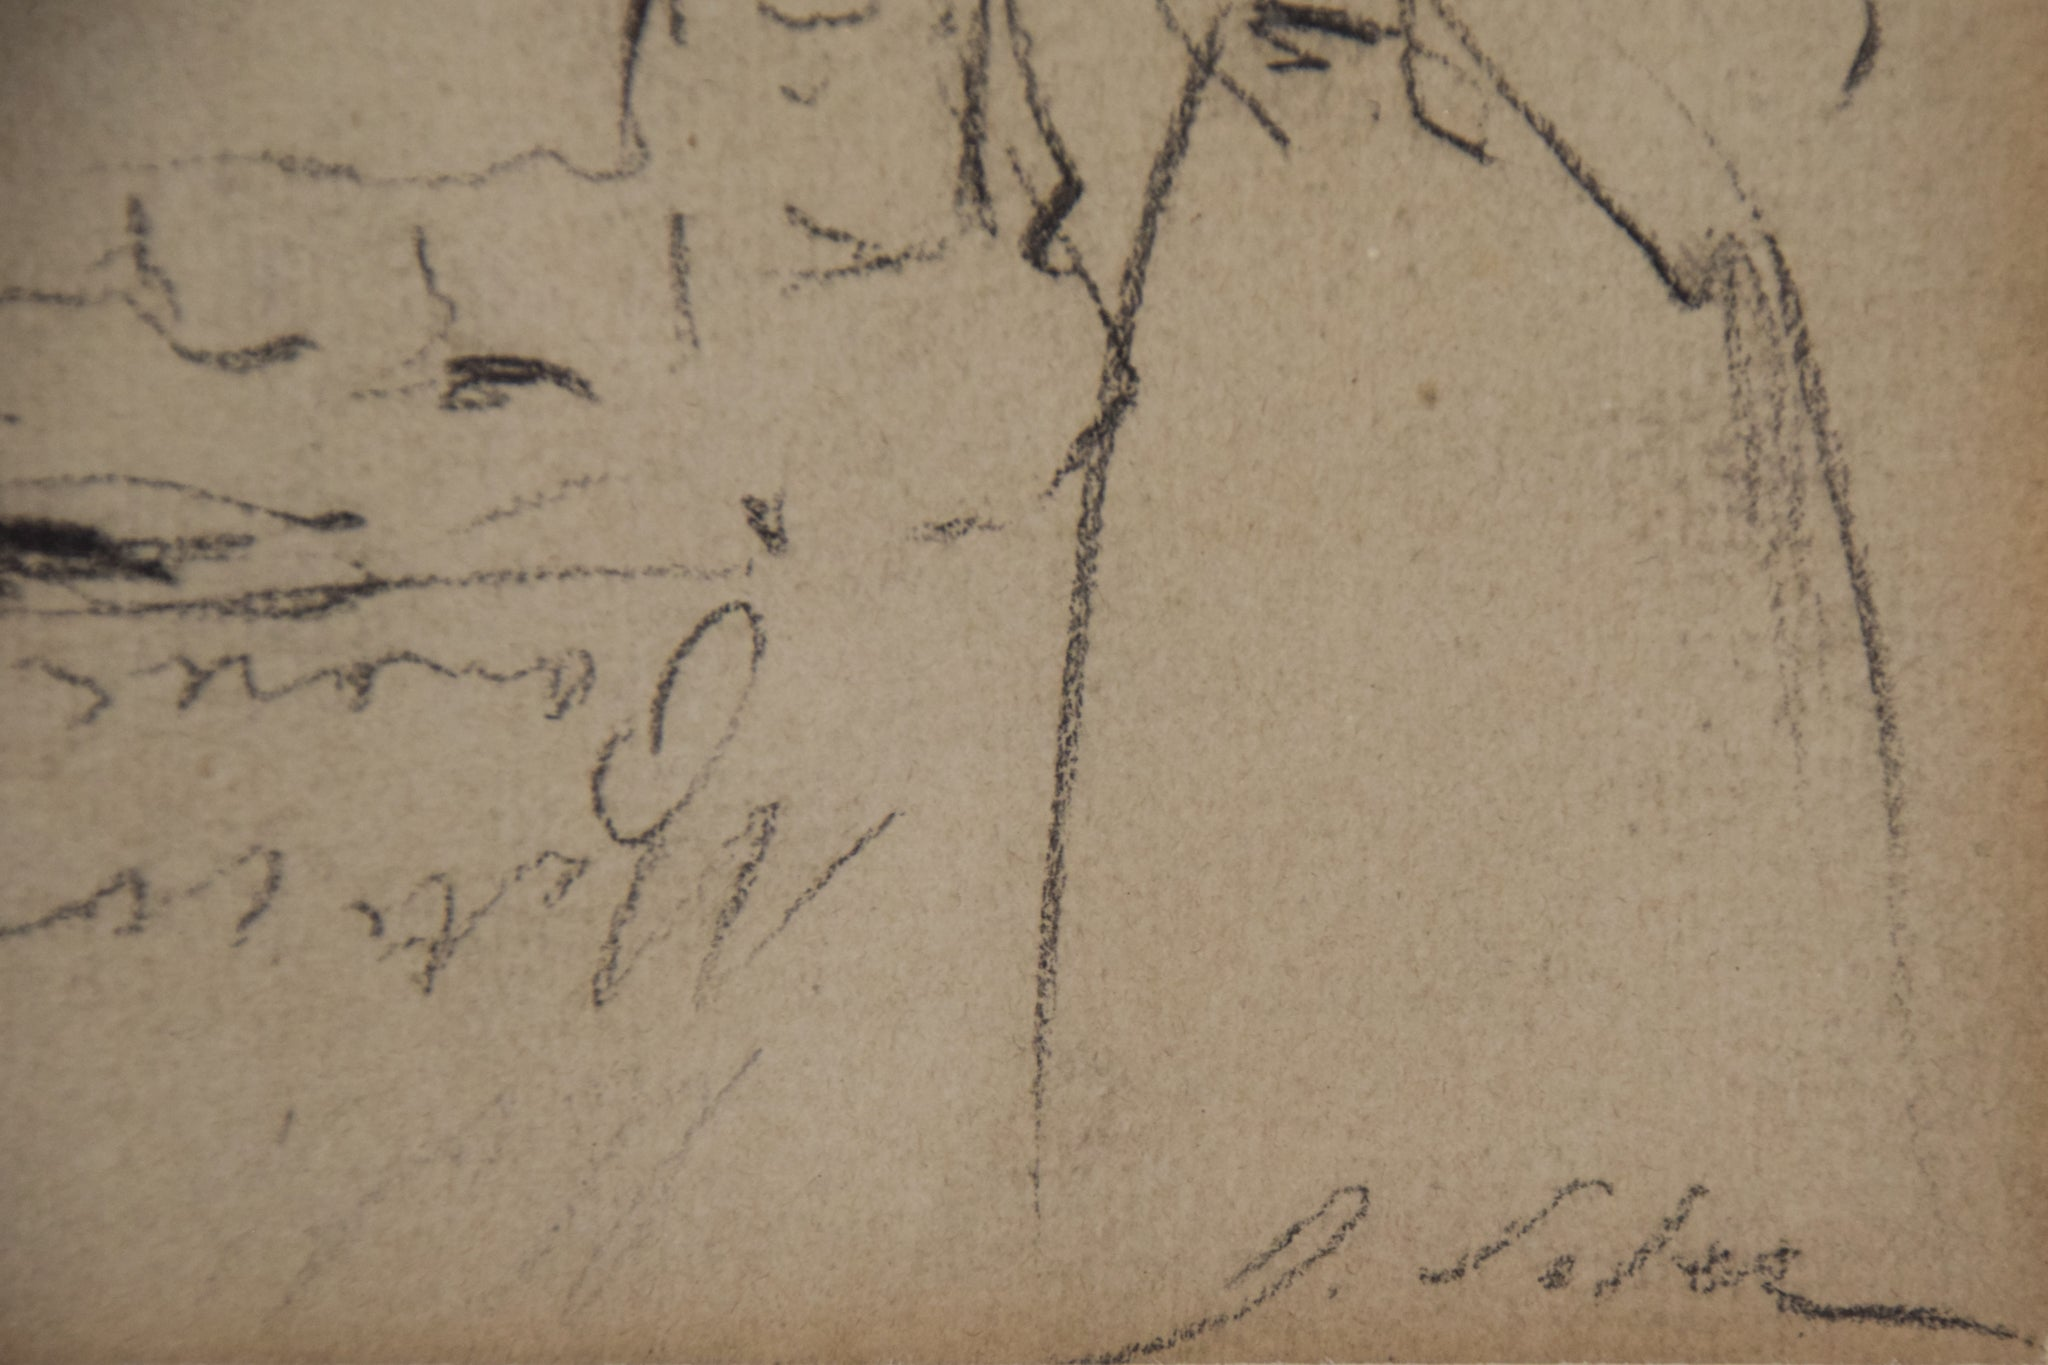 Double-sided sketches of Fin de siècle Ladies_Signature